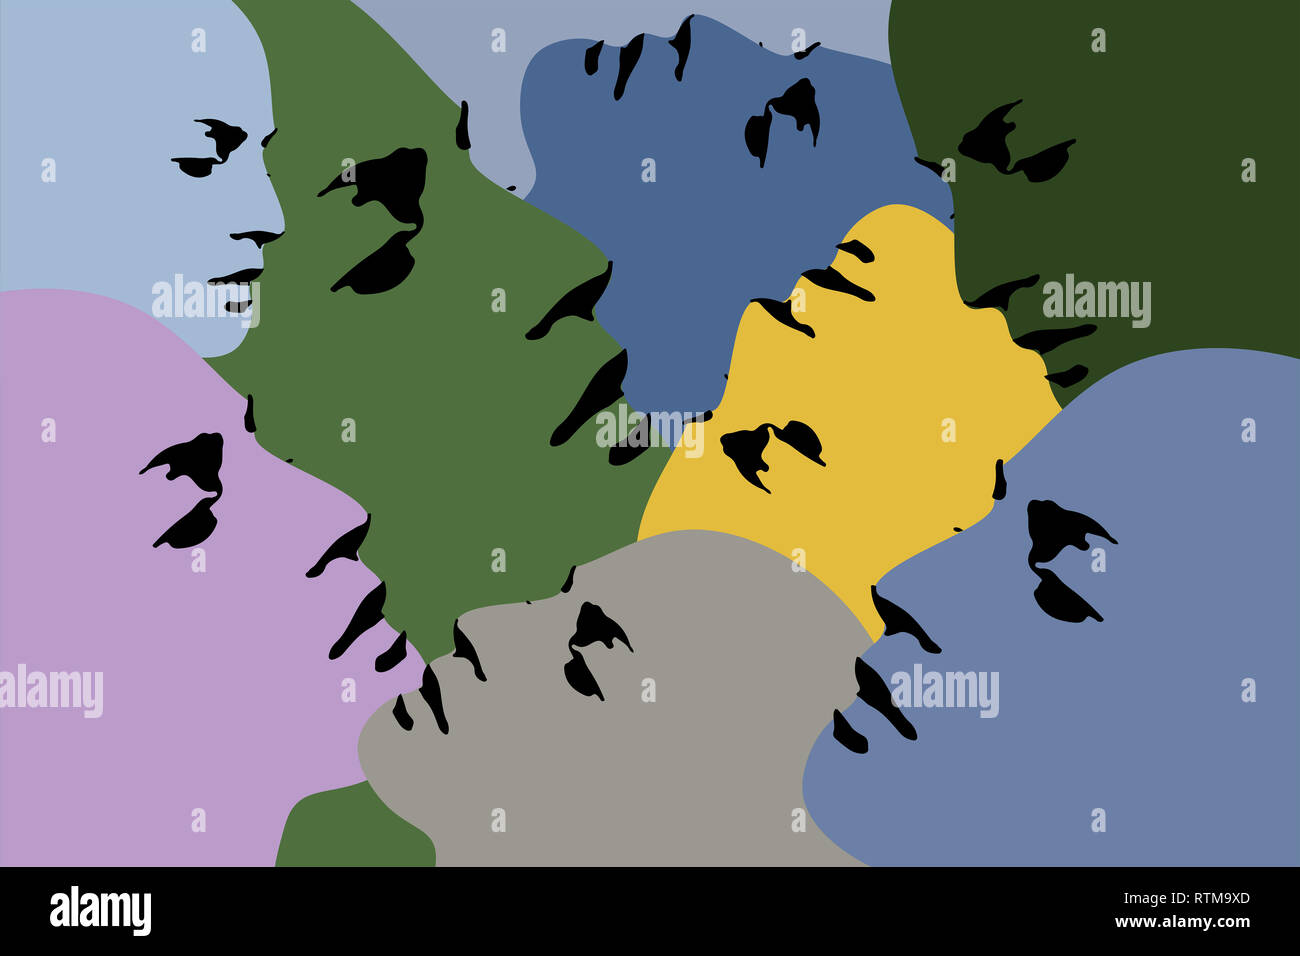 Human heads silhouette - Printable illustration Stock Photo